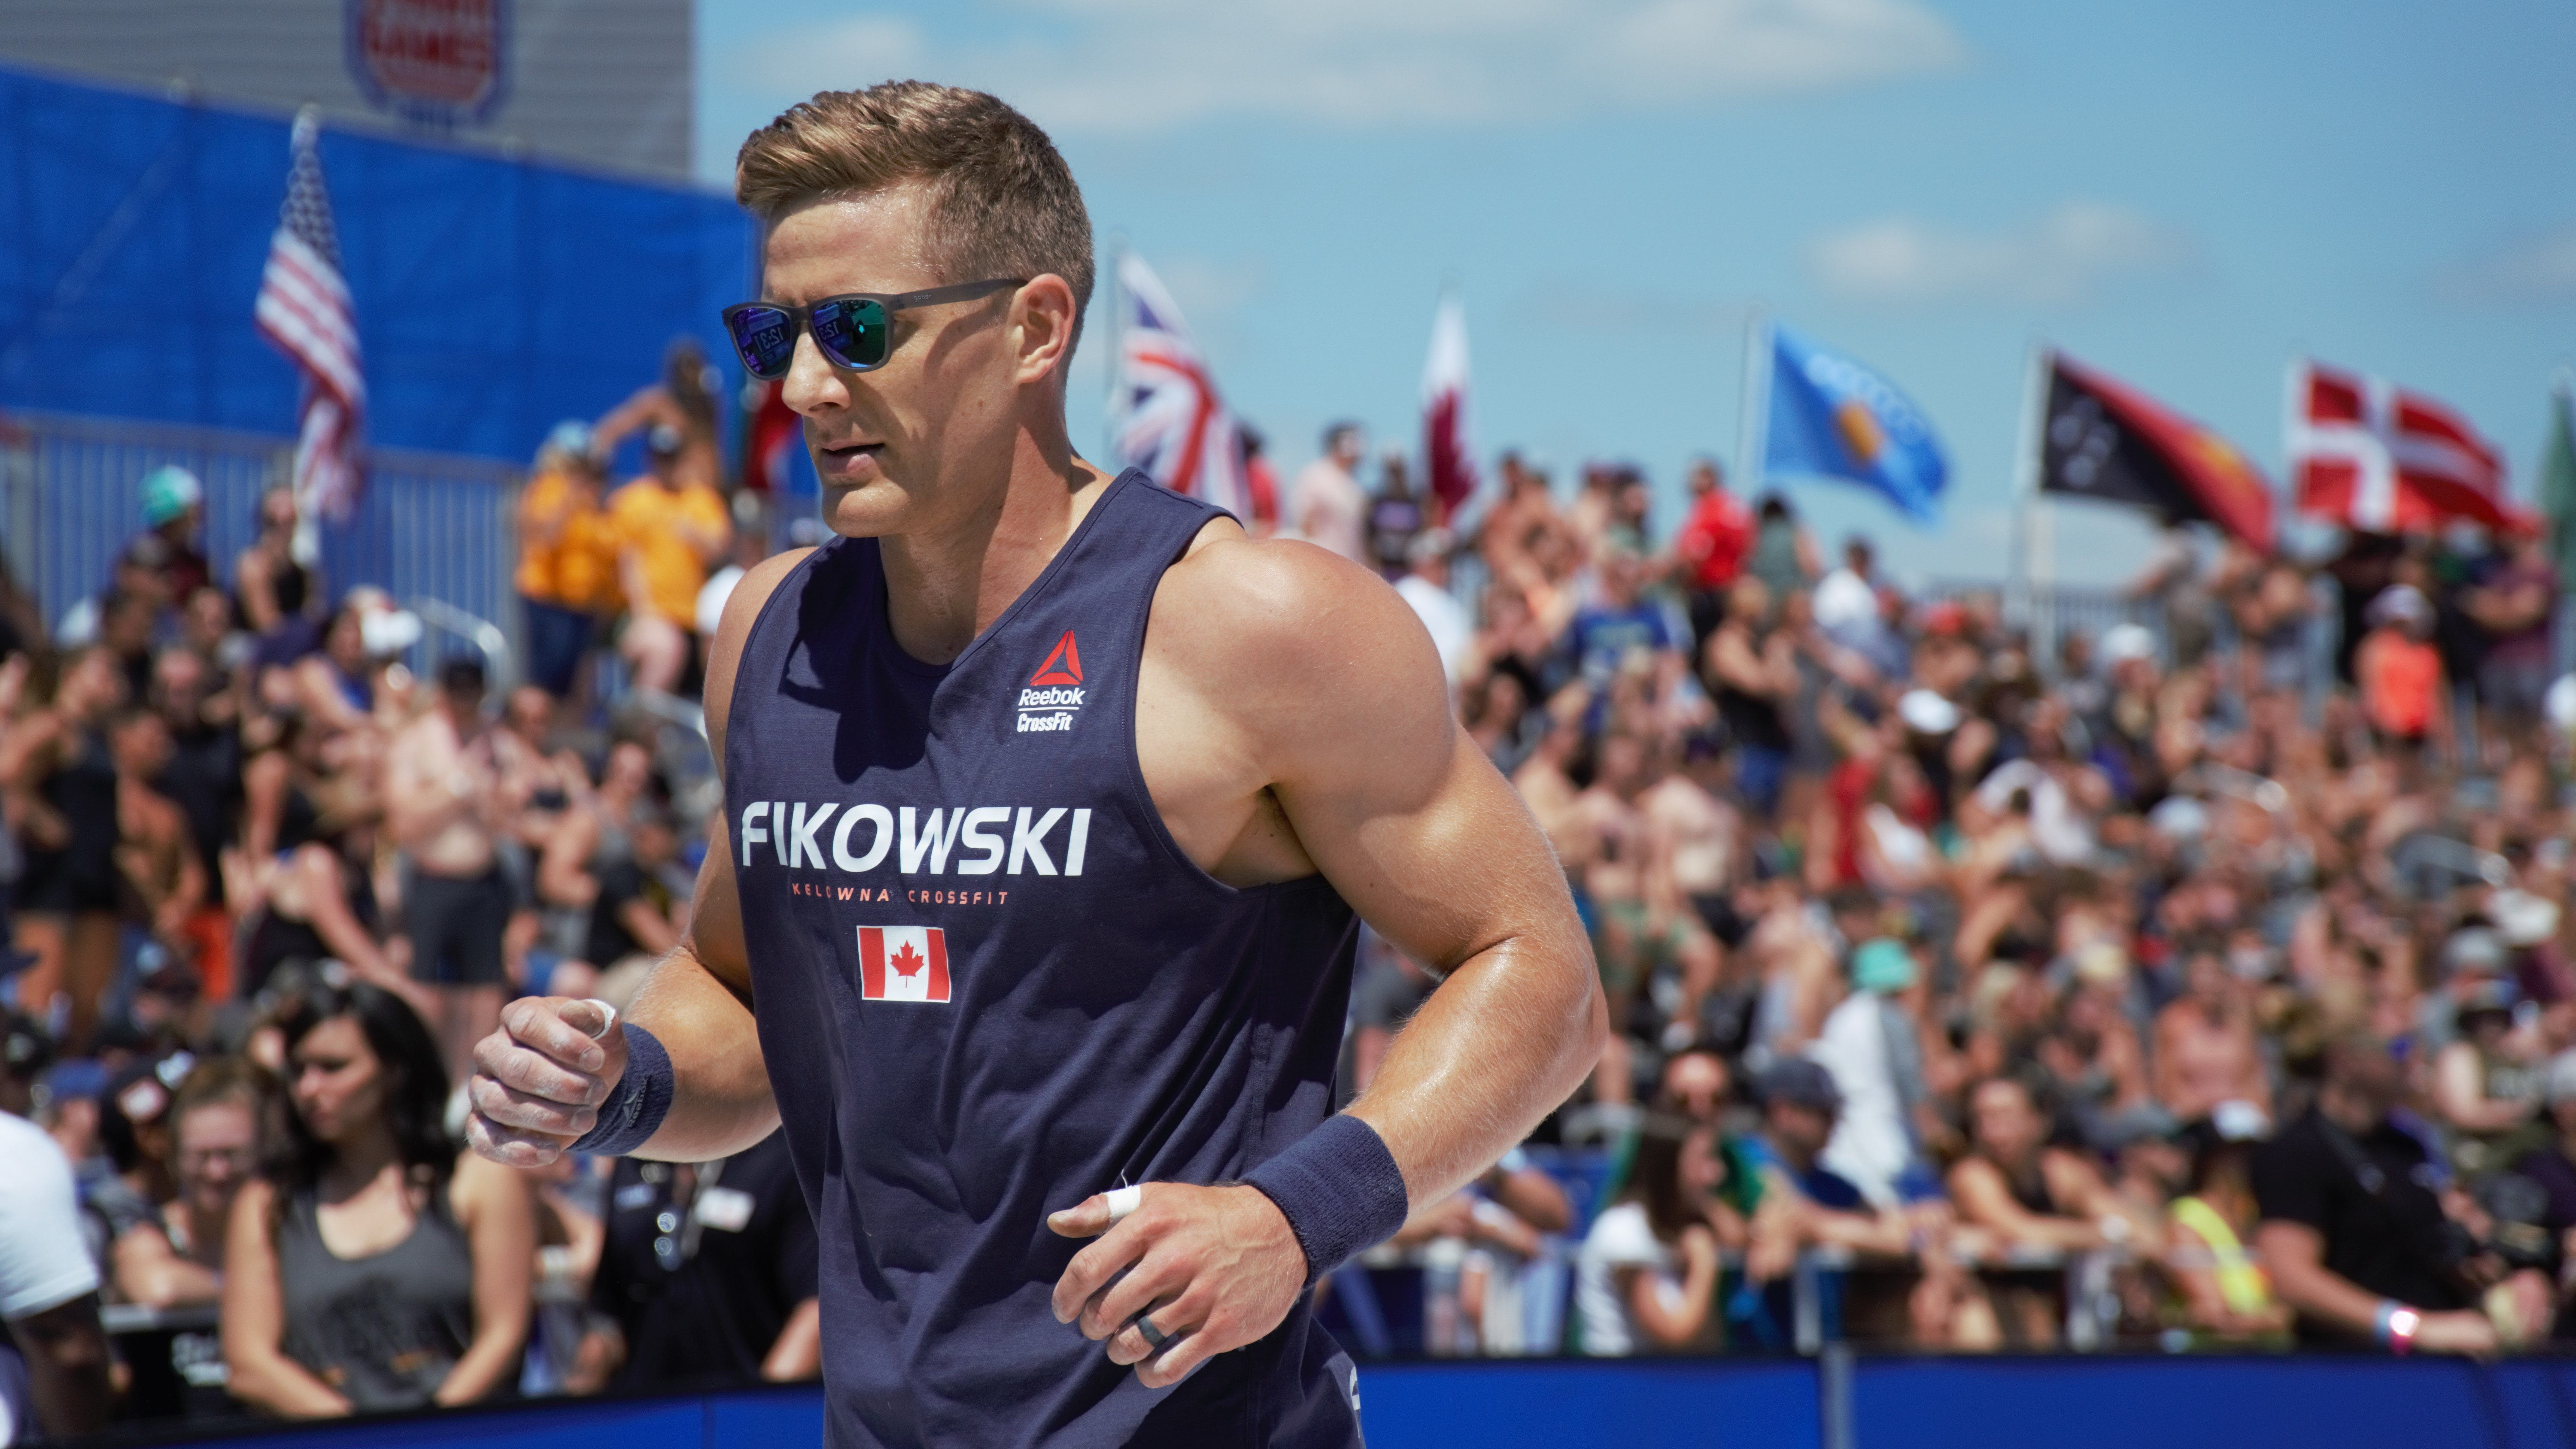 Brent Fikowski Reacts to Being Cut from The 2019 CrossFit Games